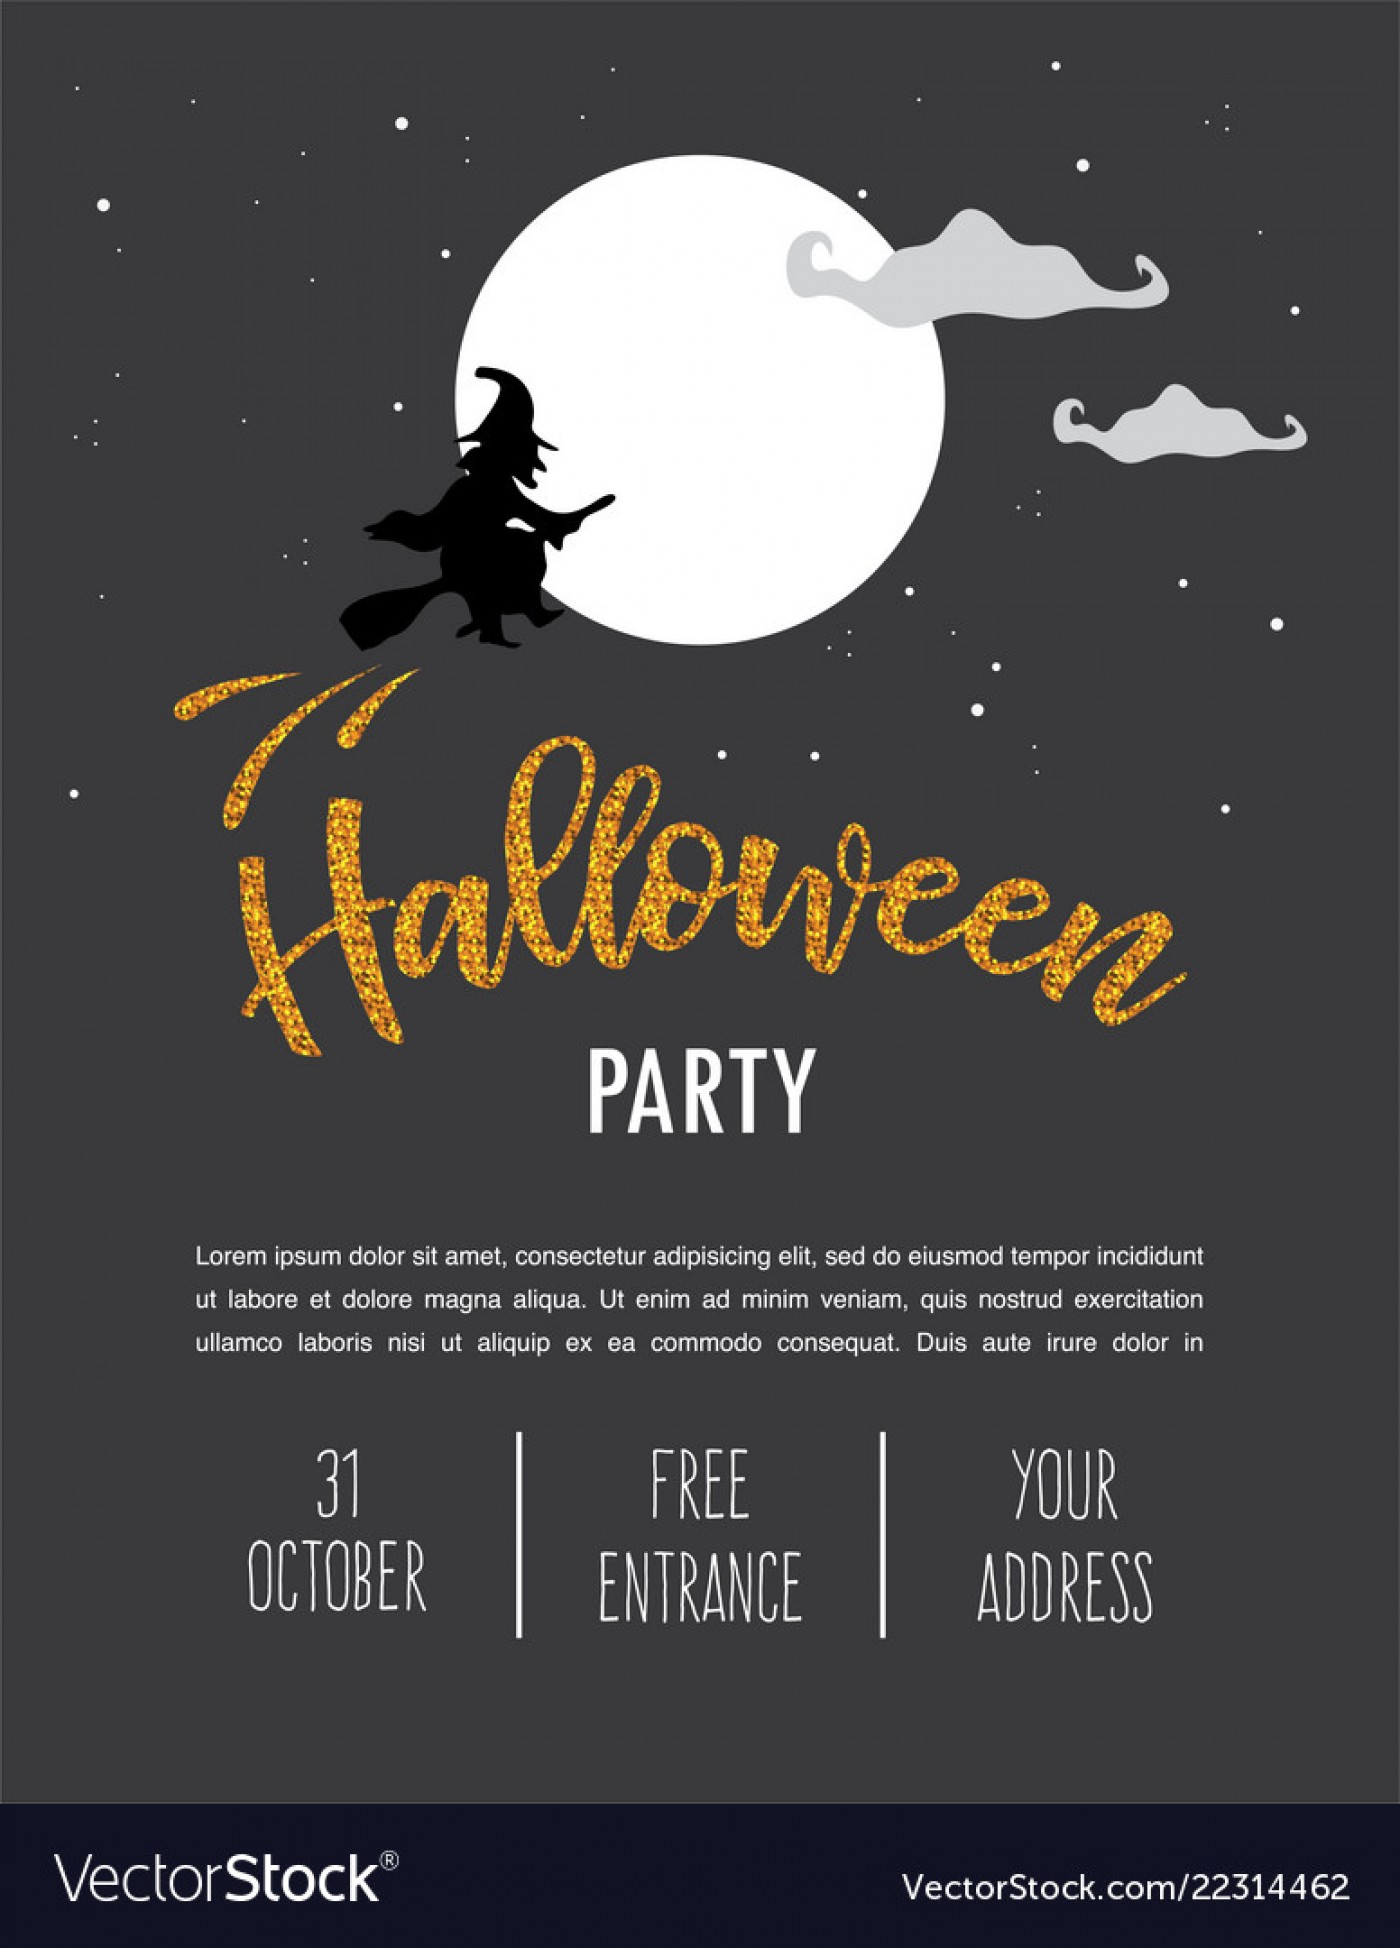 007 Exceptional Free Halloween Party Invitation Template High Definition  Printable Birthday For Word Download1400